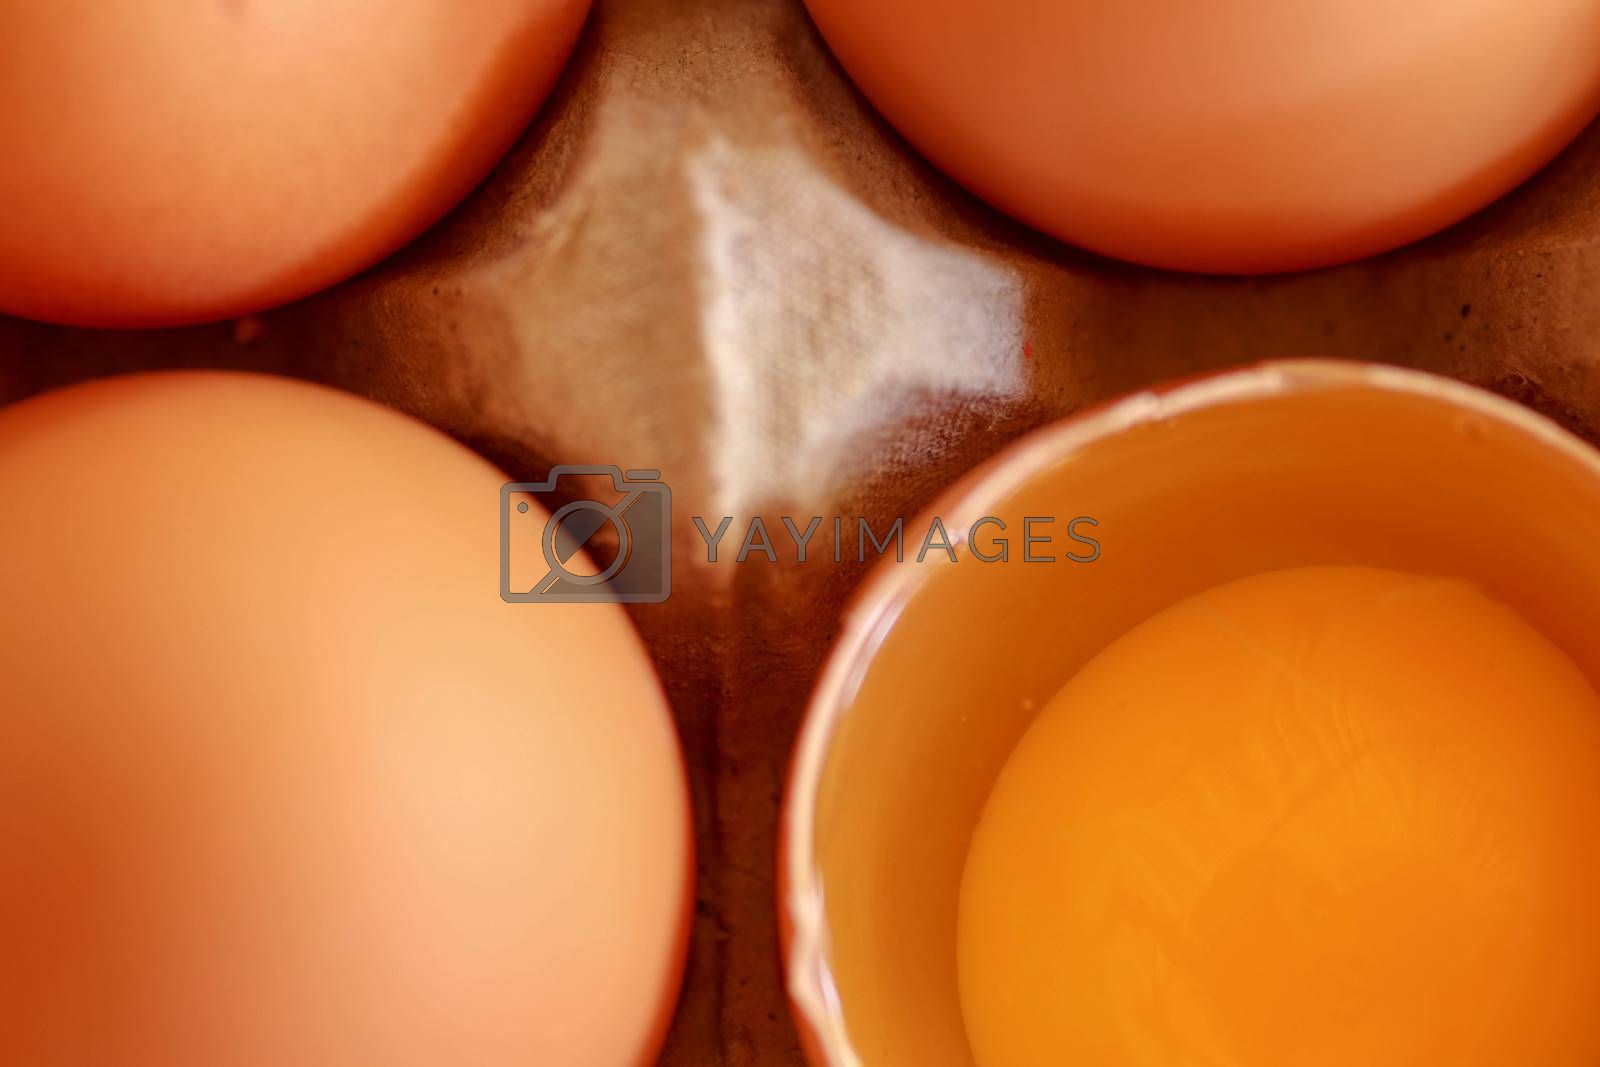 tray of raw eggs on background. Top view.